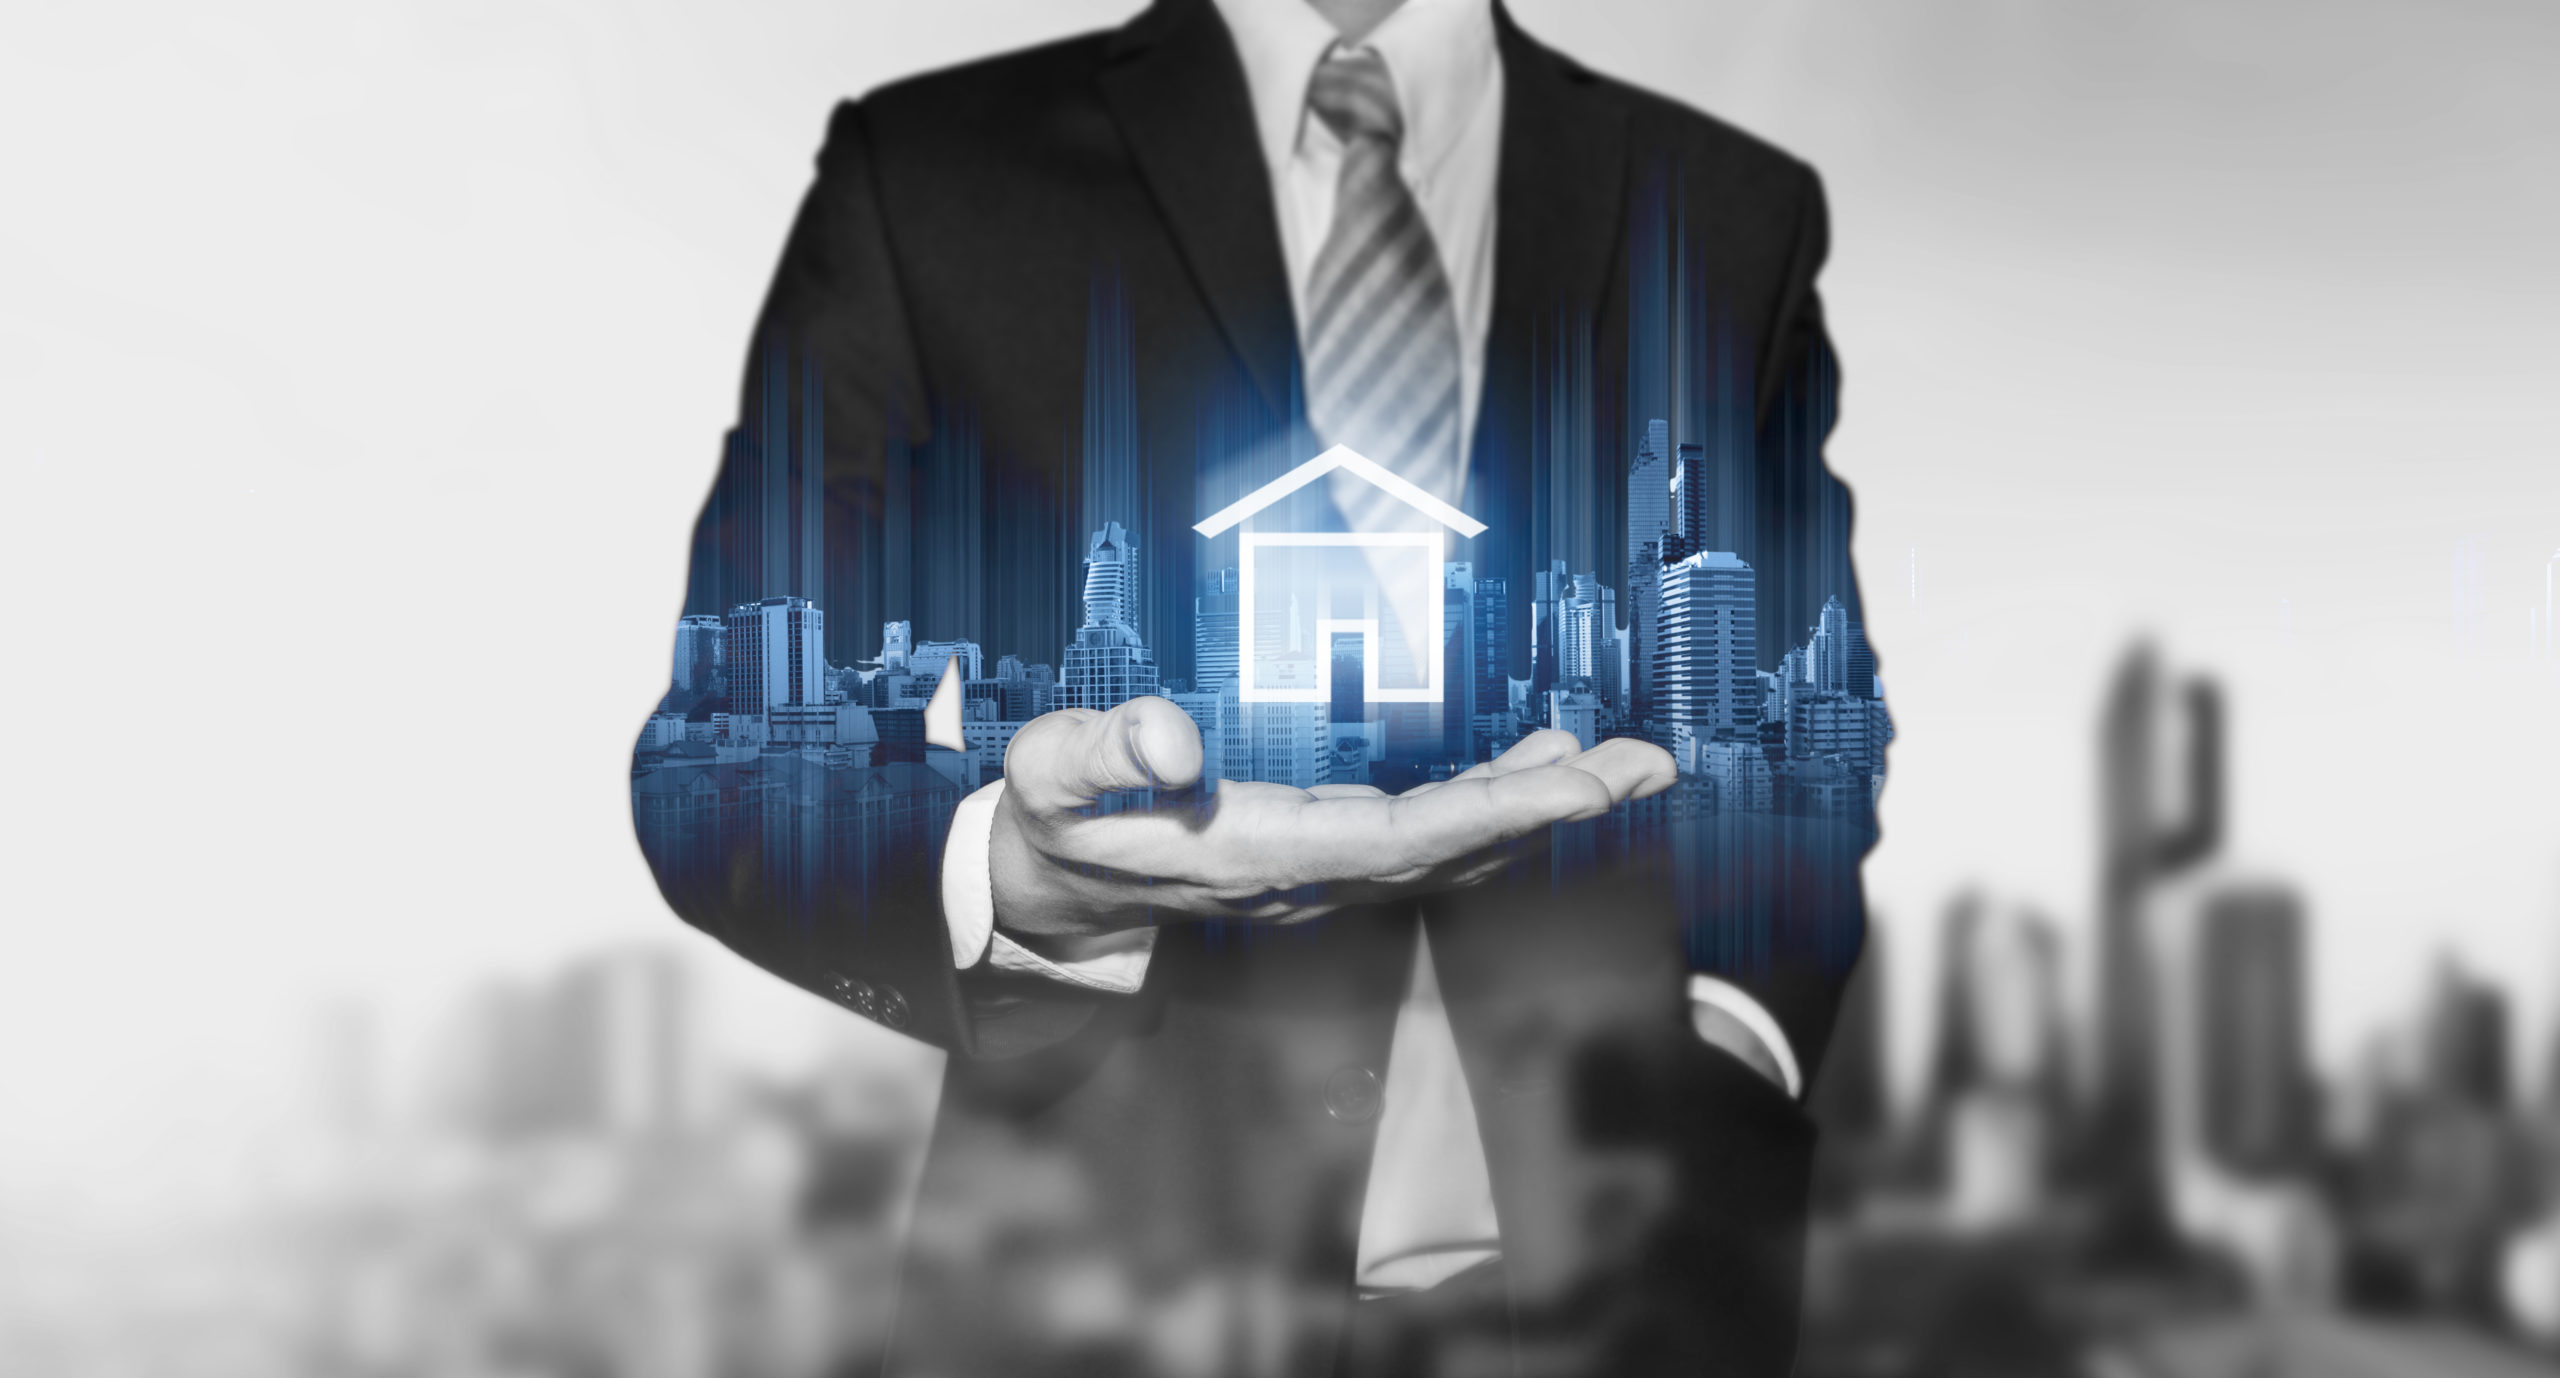 a graphic image of a man in a business suit with an icon of a house floating on his hand